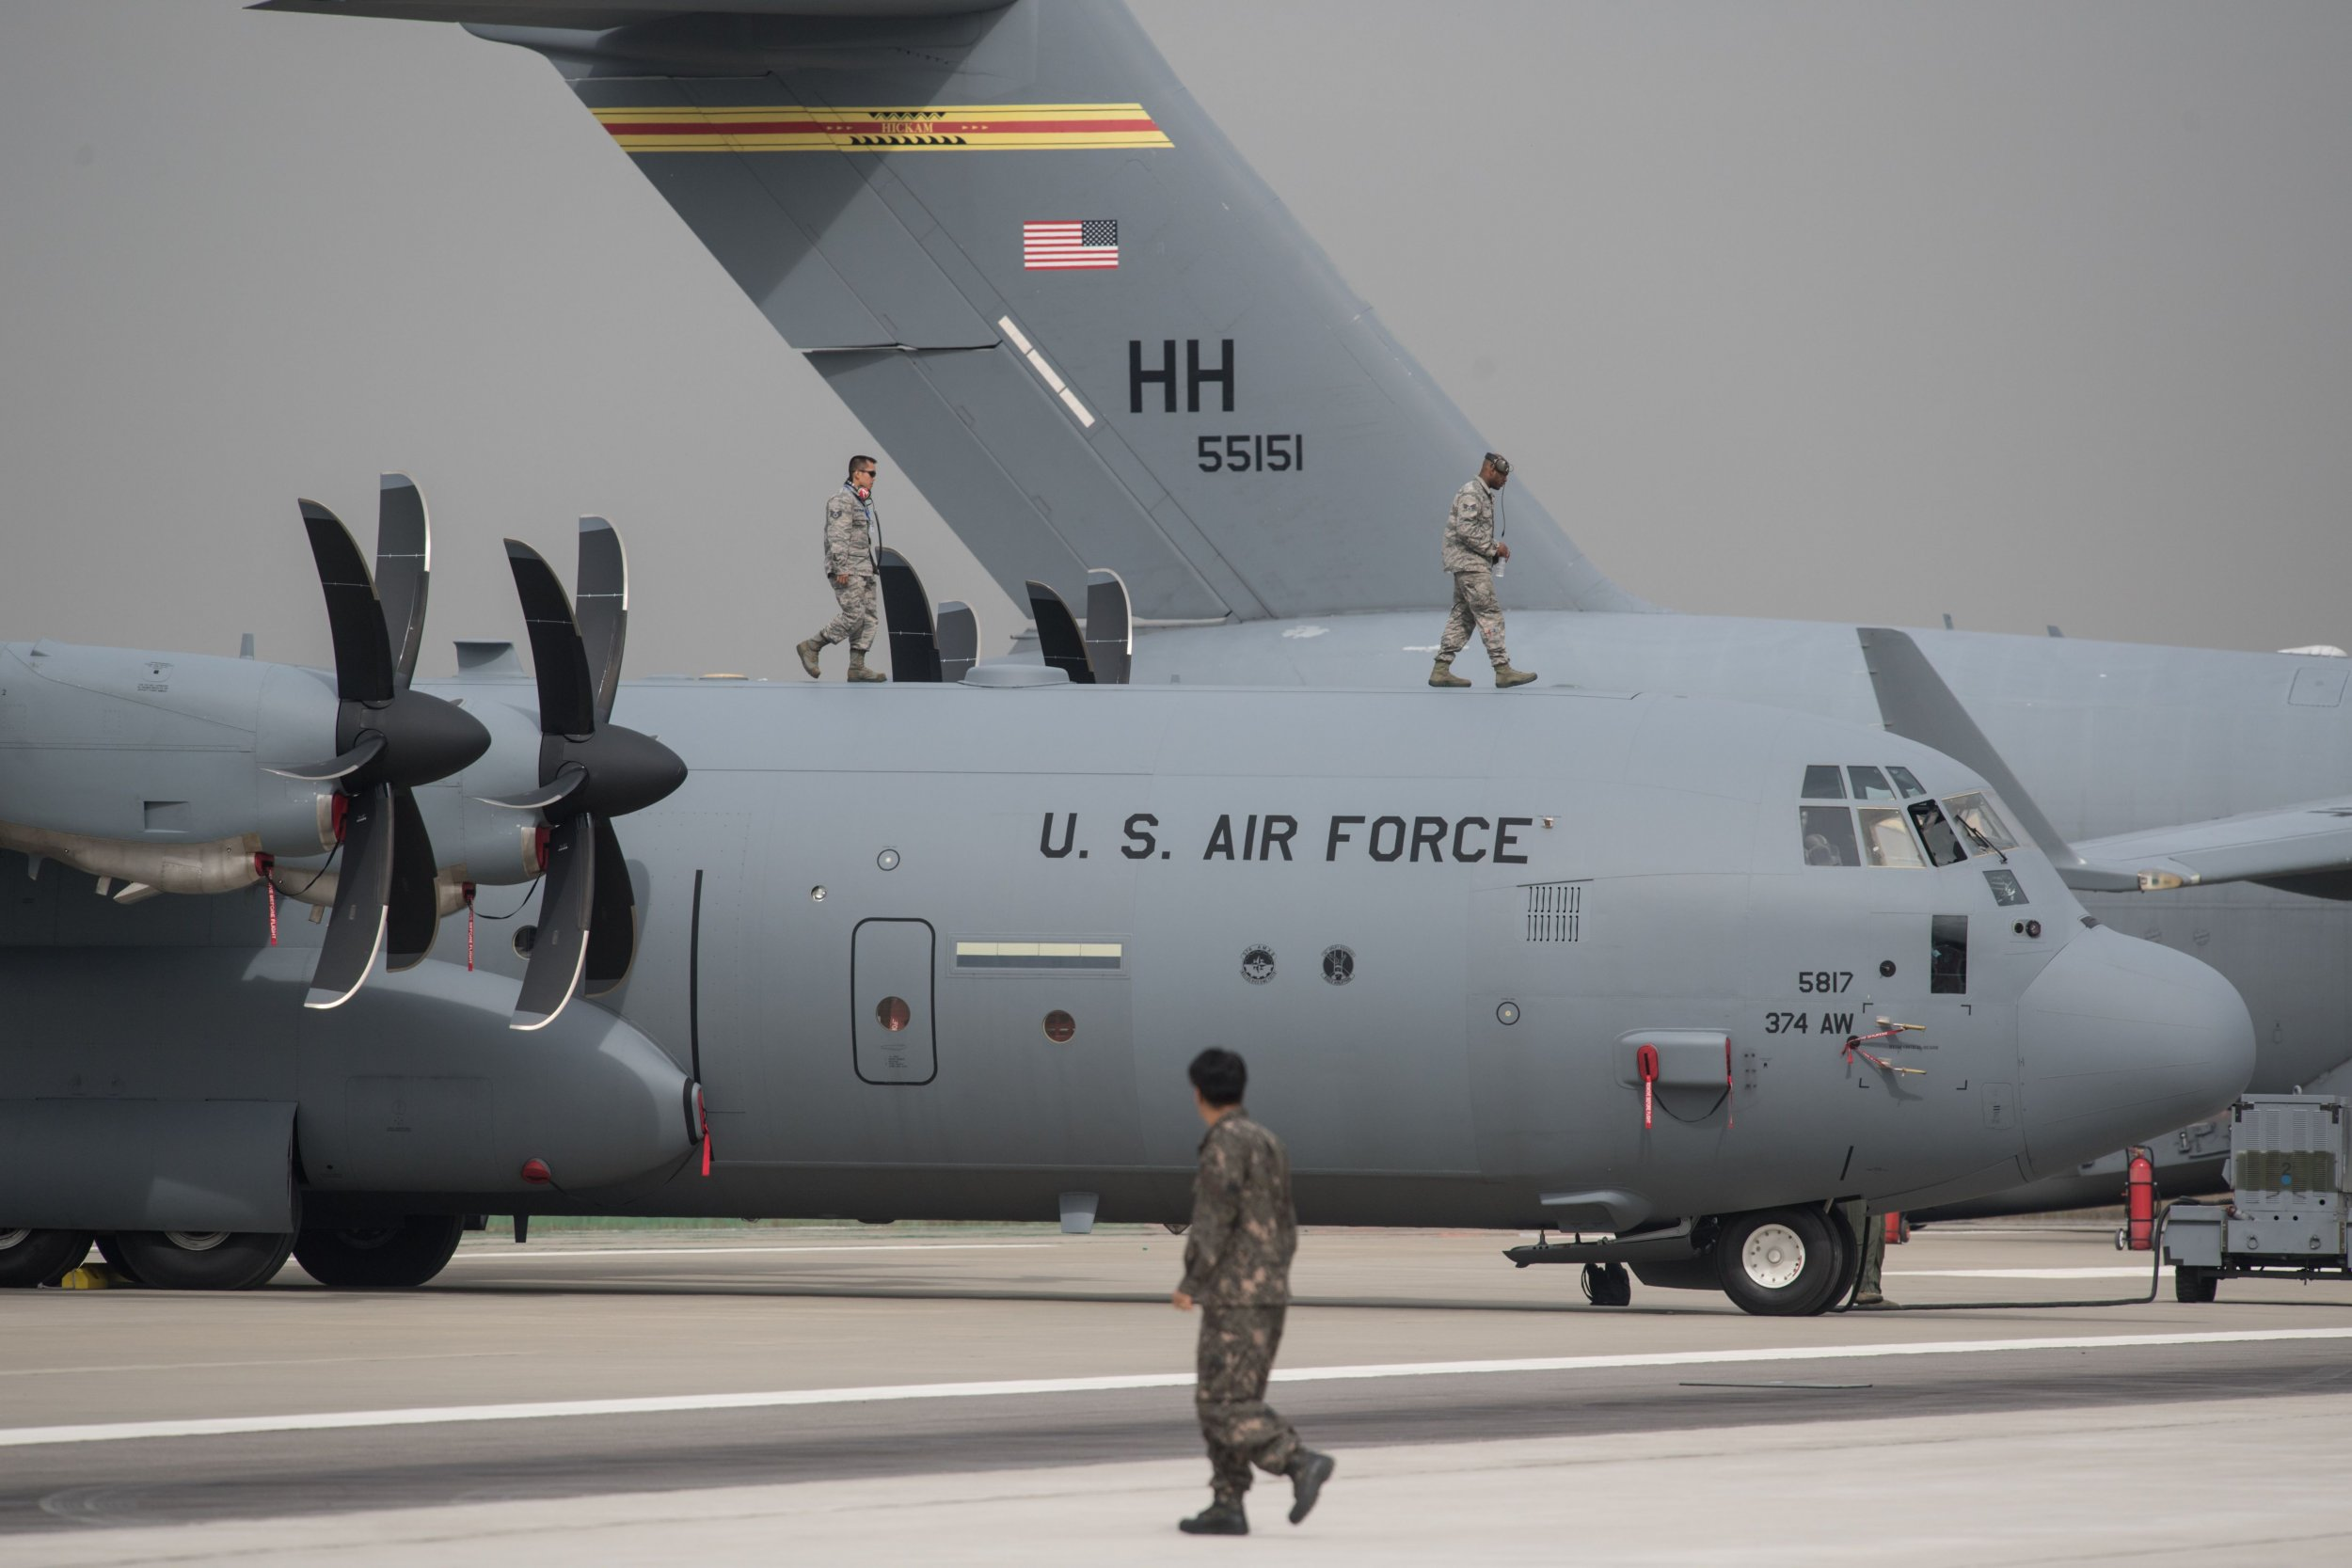 Trump's Plan to Save Air Force From Collapse Due to Pilot